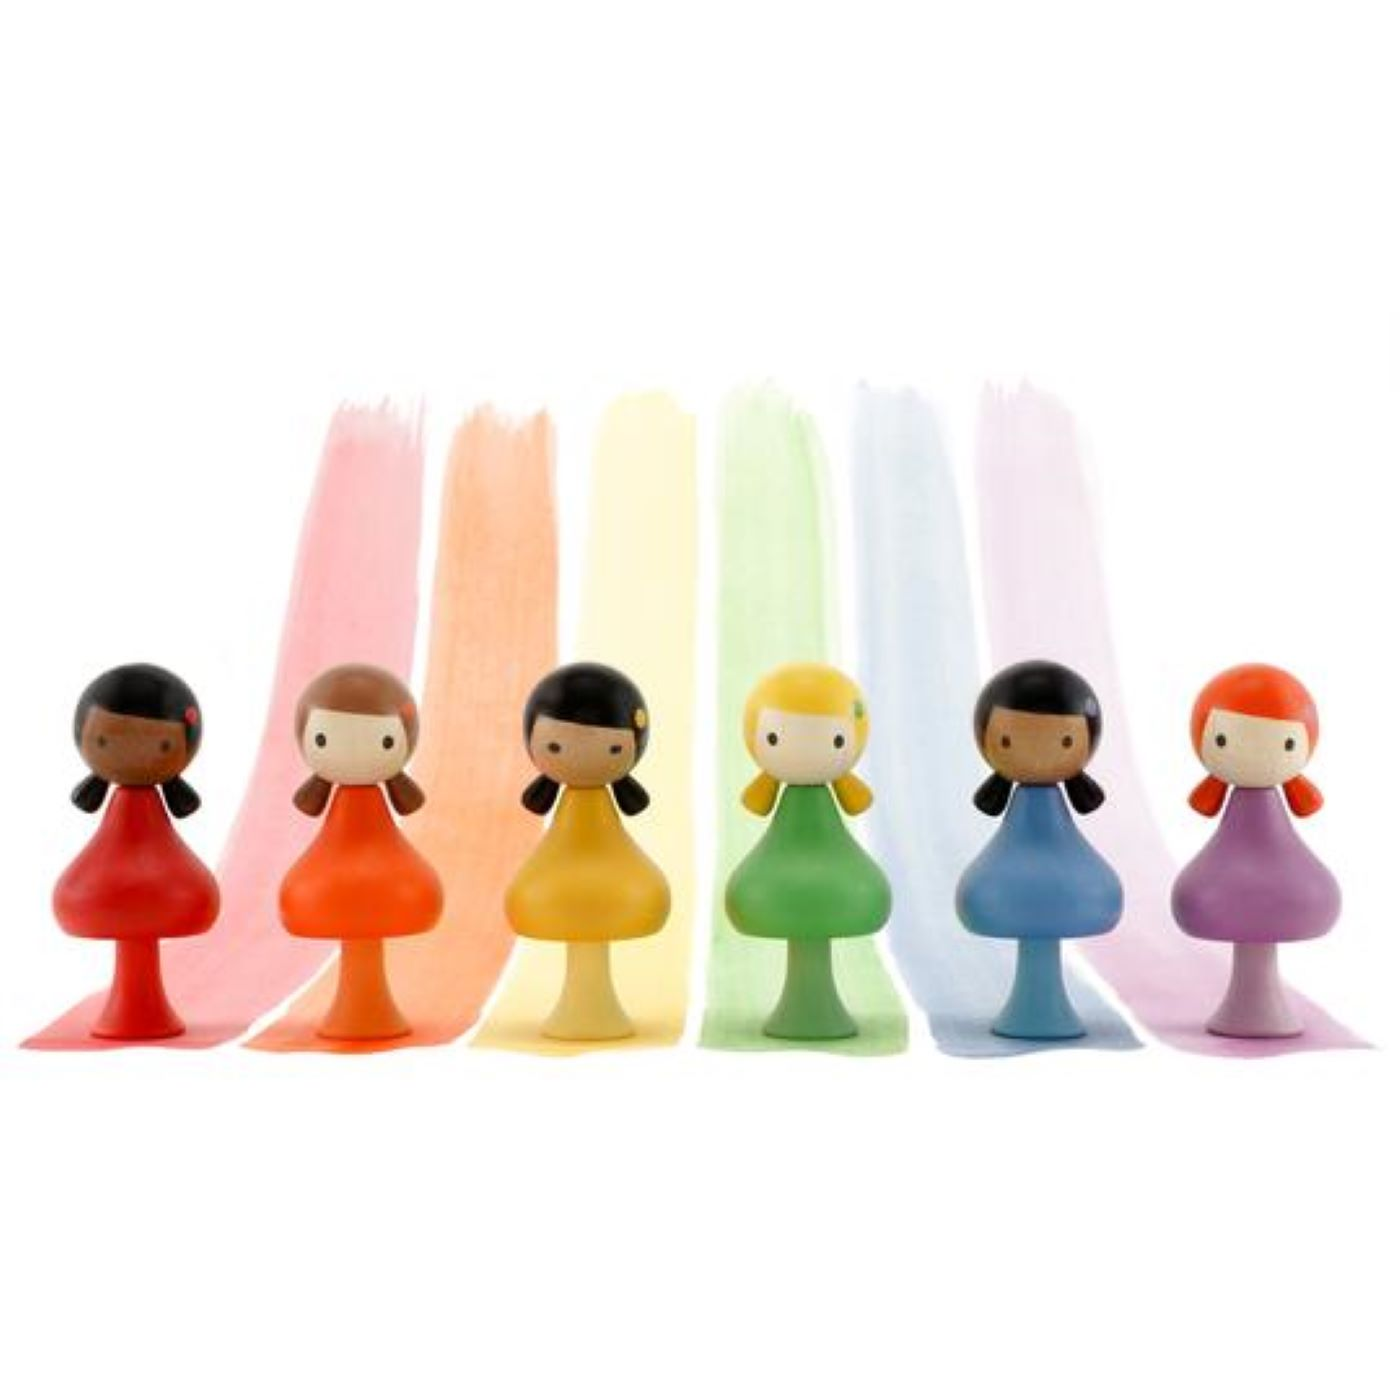 Clicques - Rainbow Girls Wooden Figurines (set of 3)